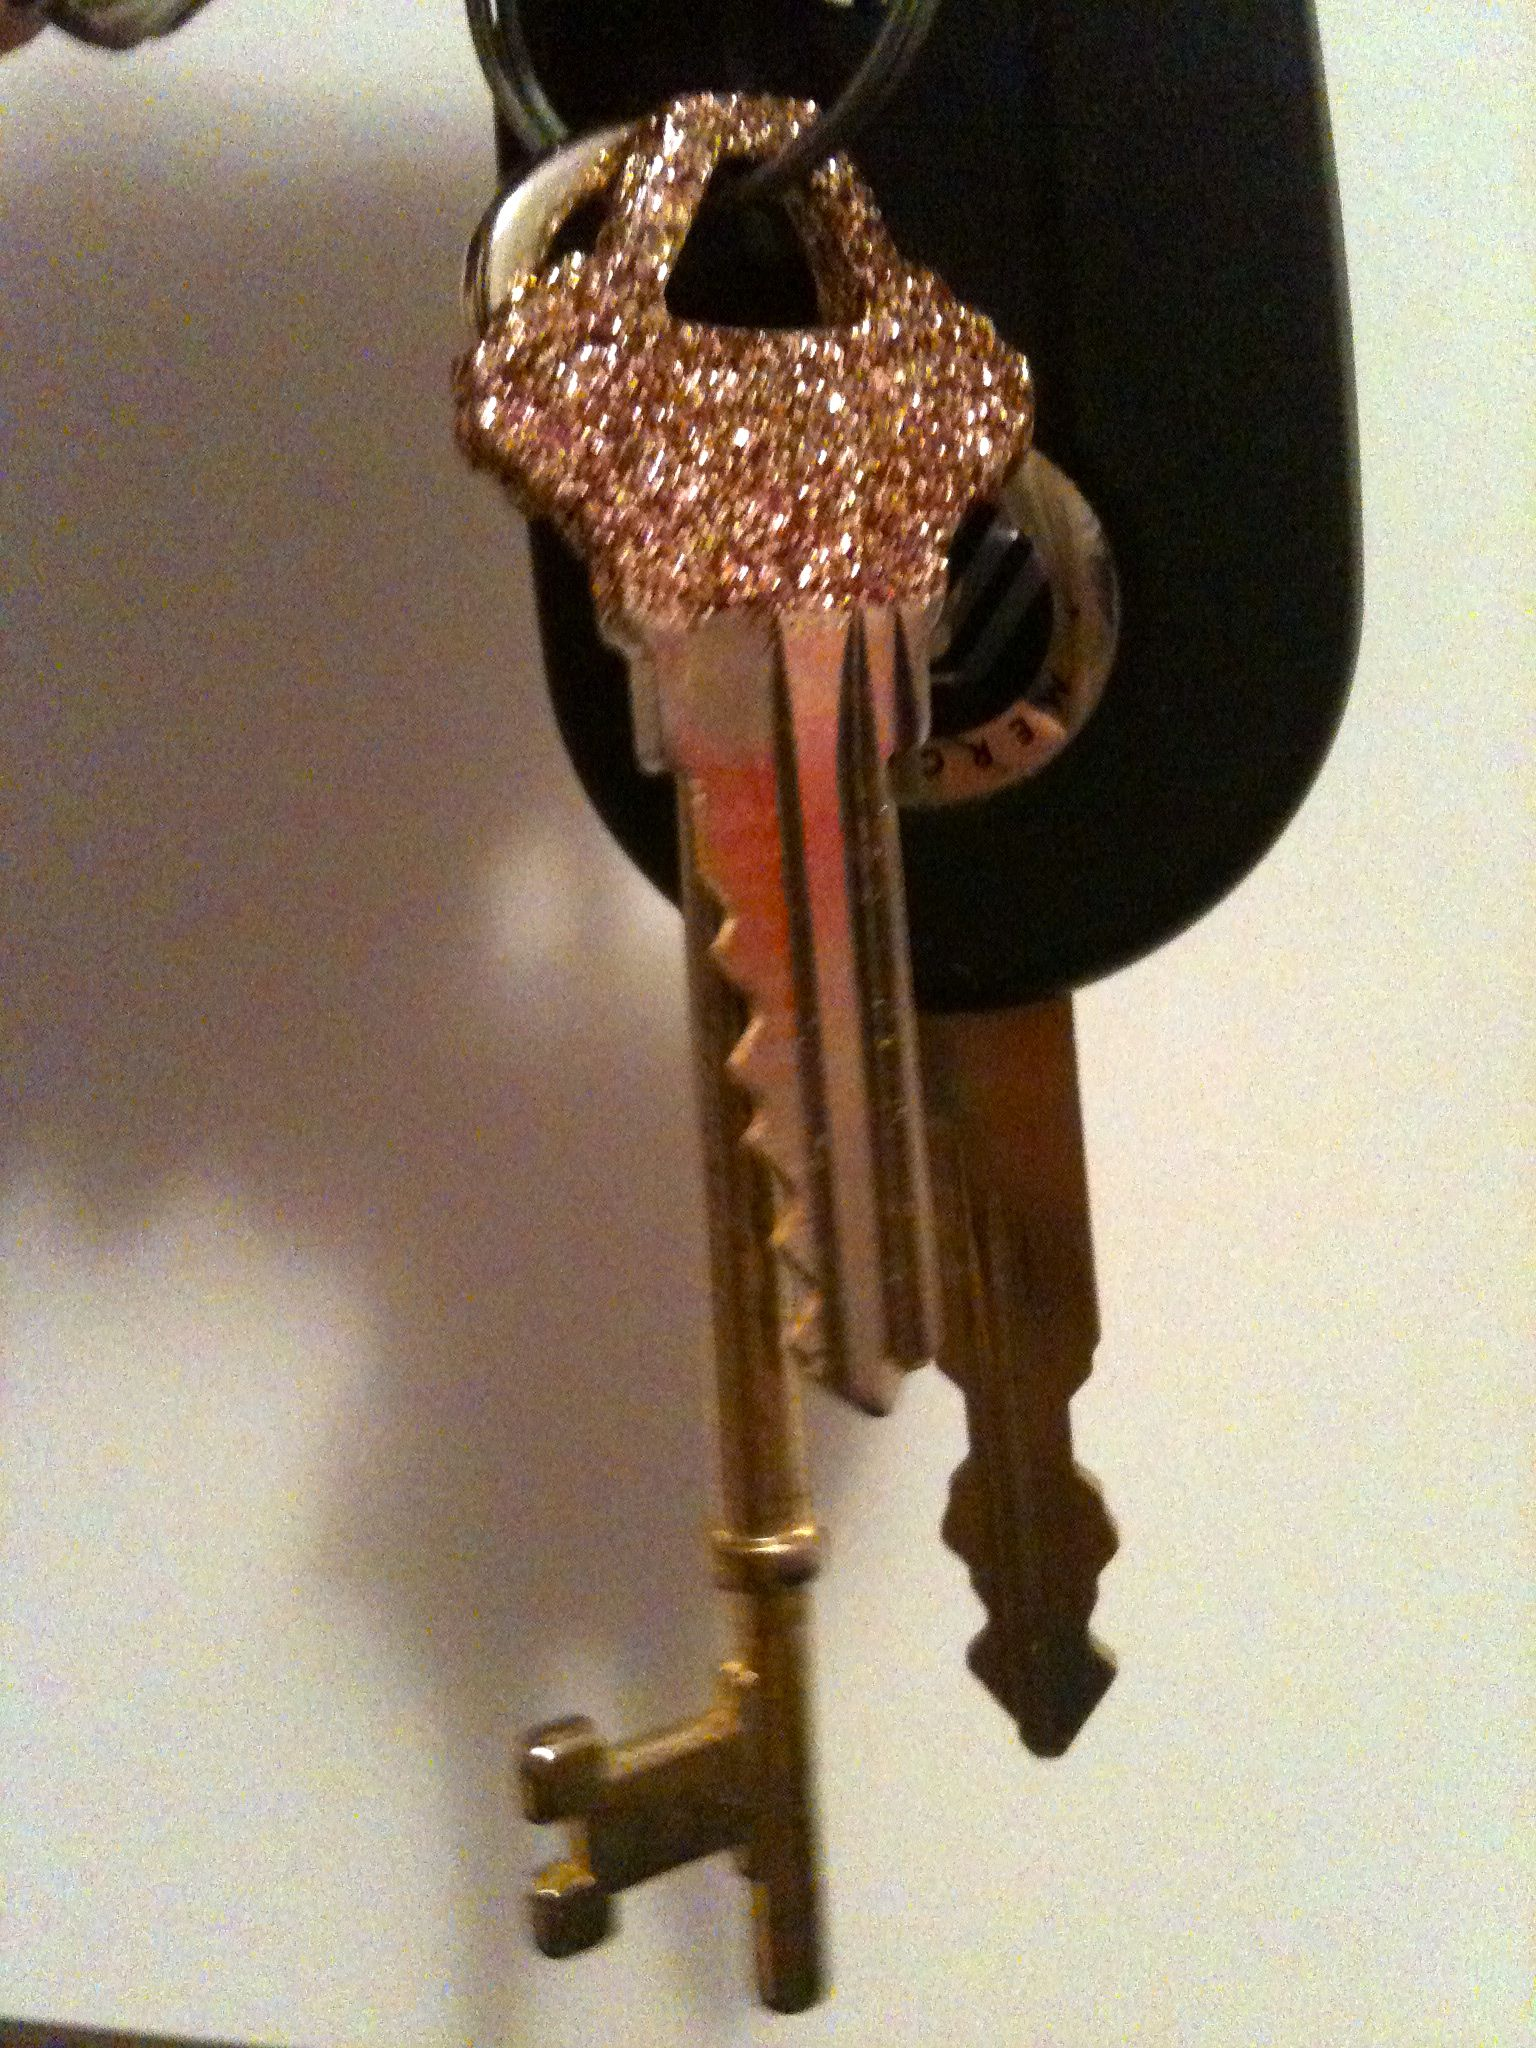 glitter keys to easily differentiate, and duh, because it's pretty. This is Martha Stewart glitter in Bronze. LOVE IT!